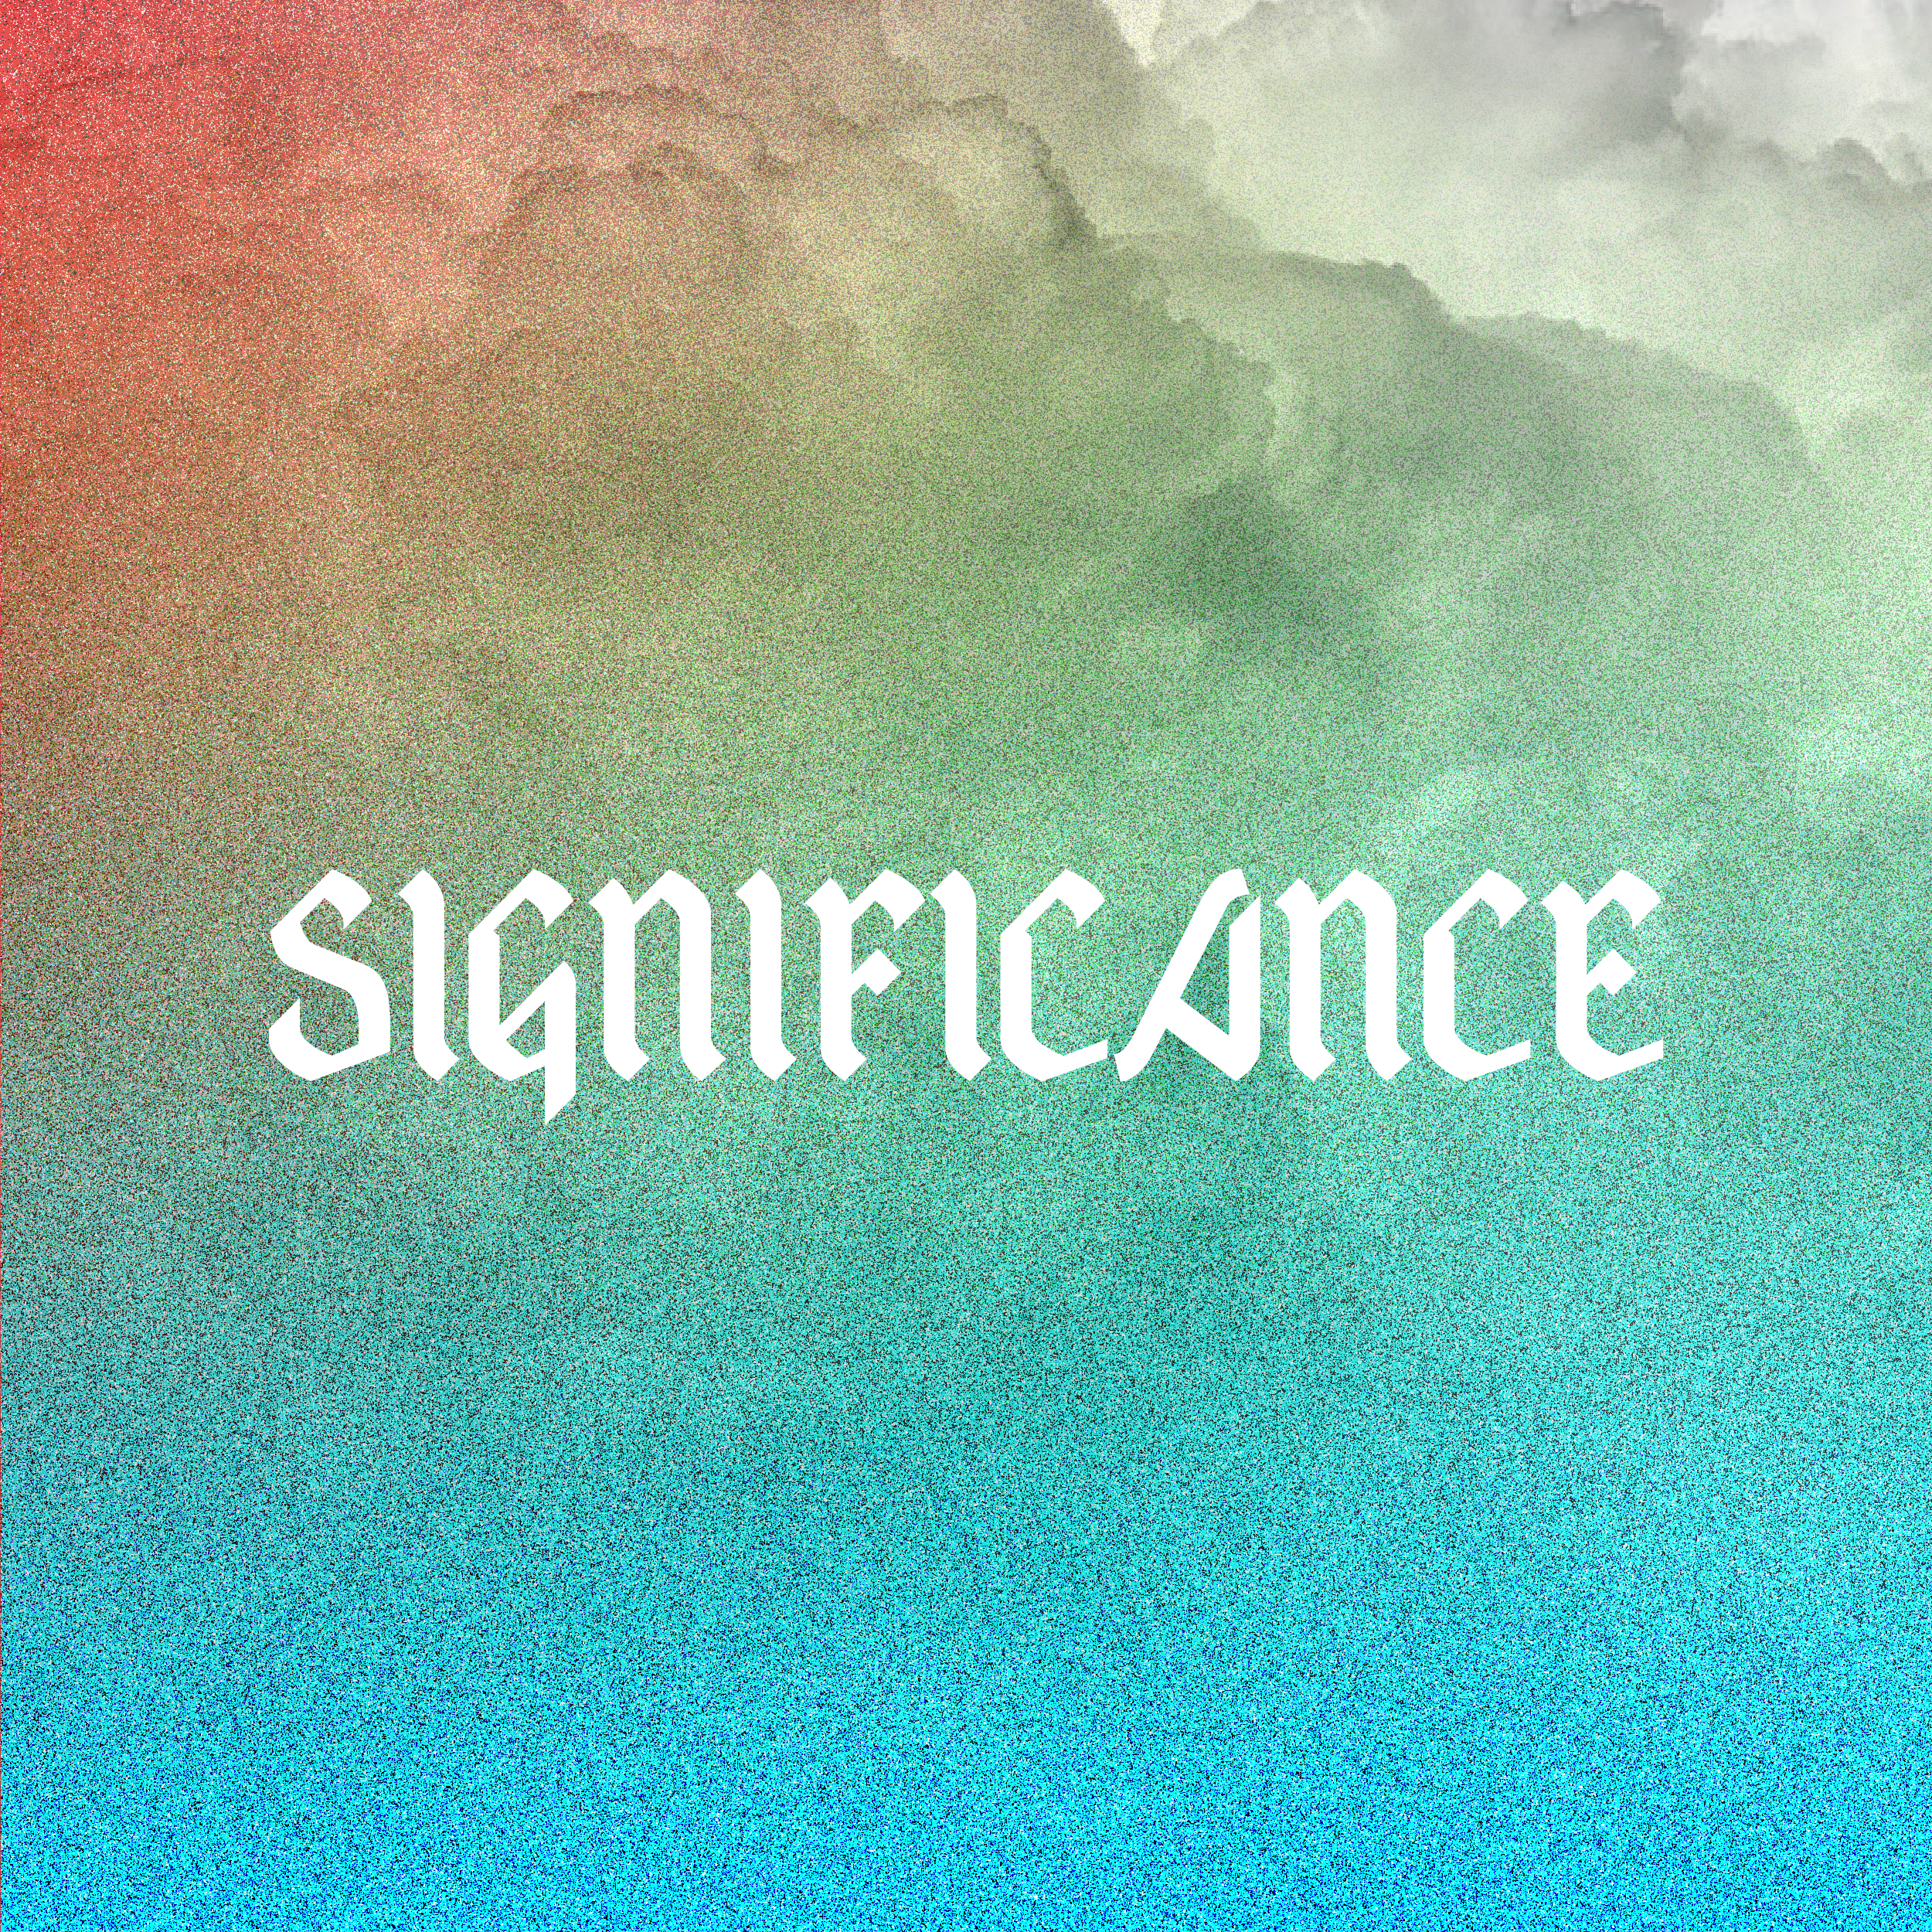 Significance-01.png